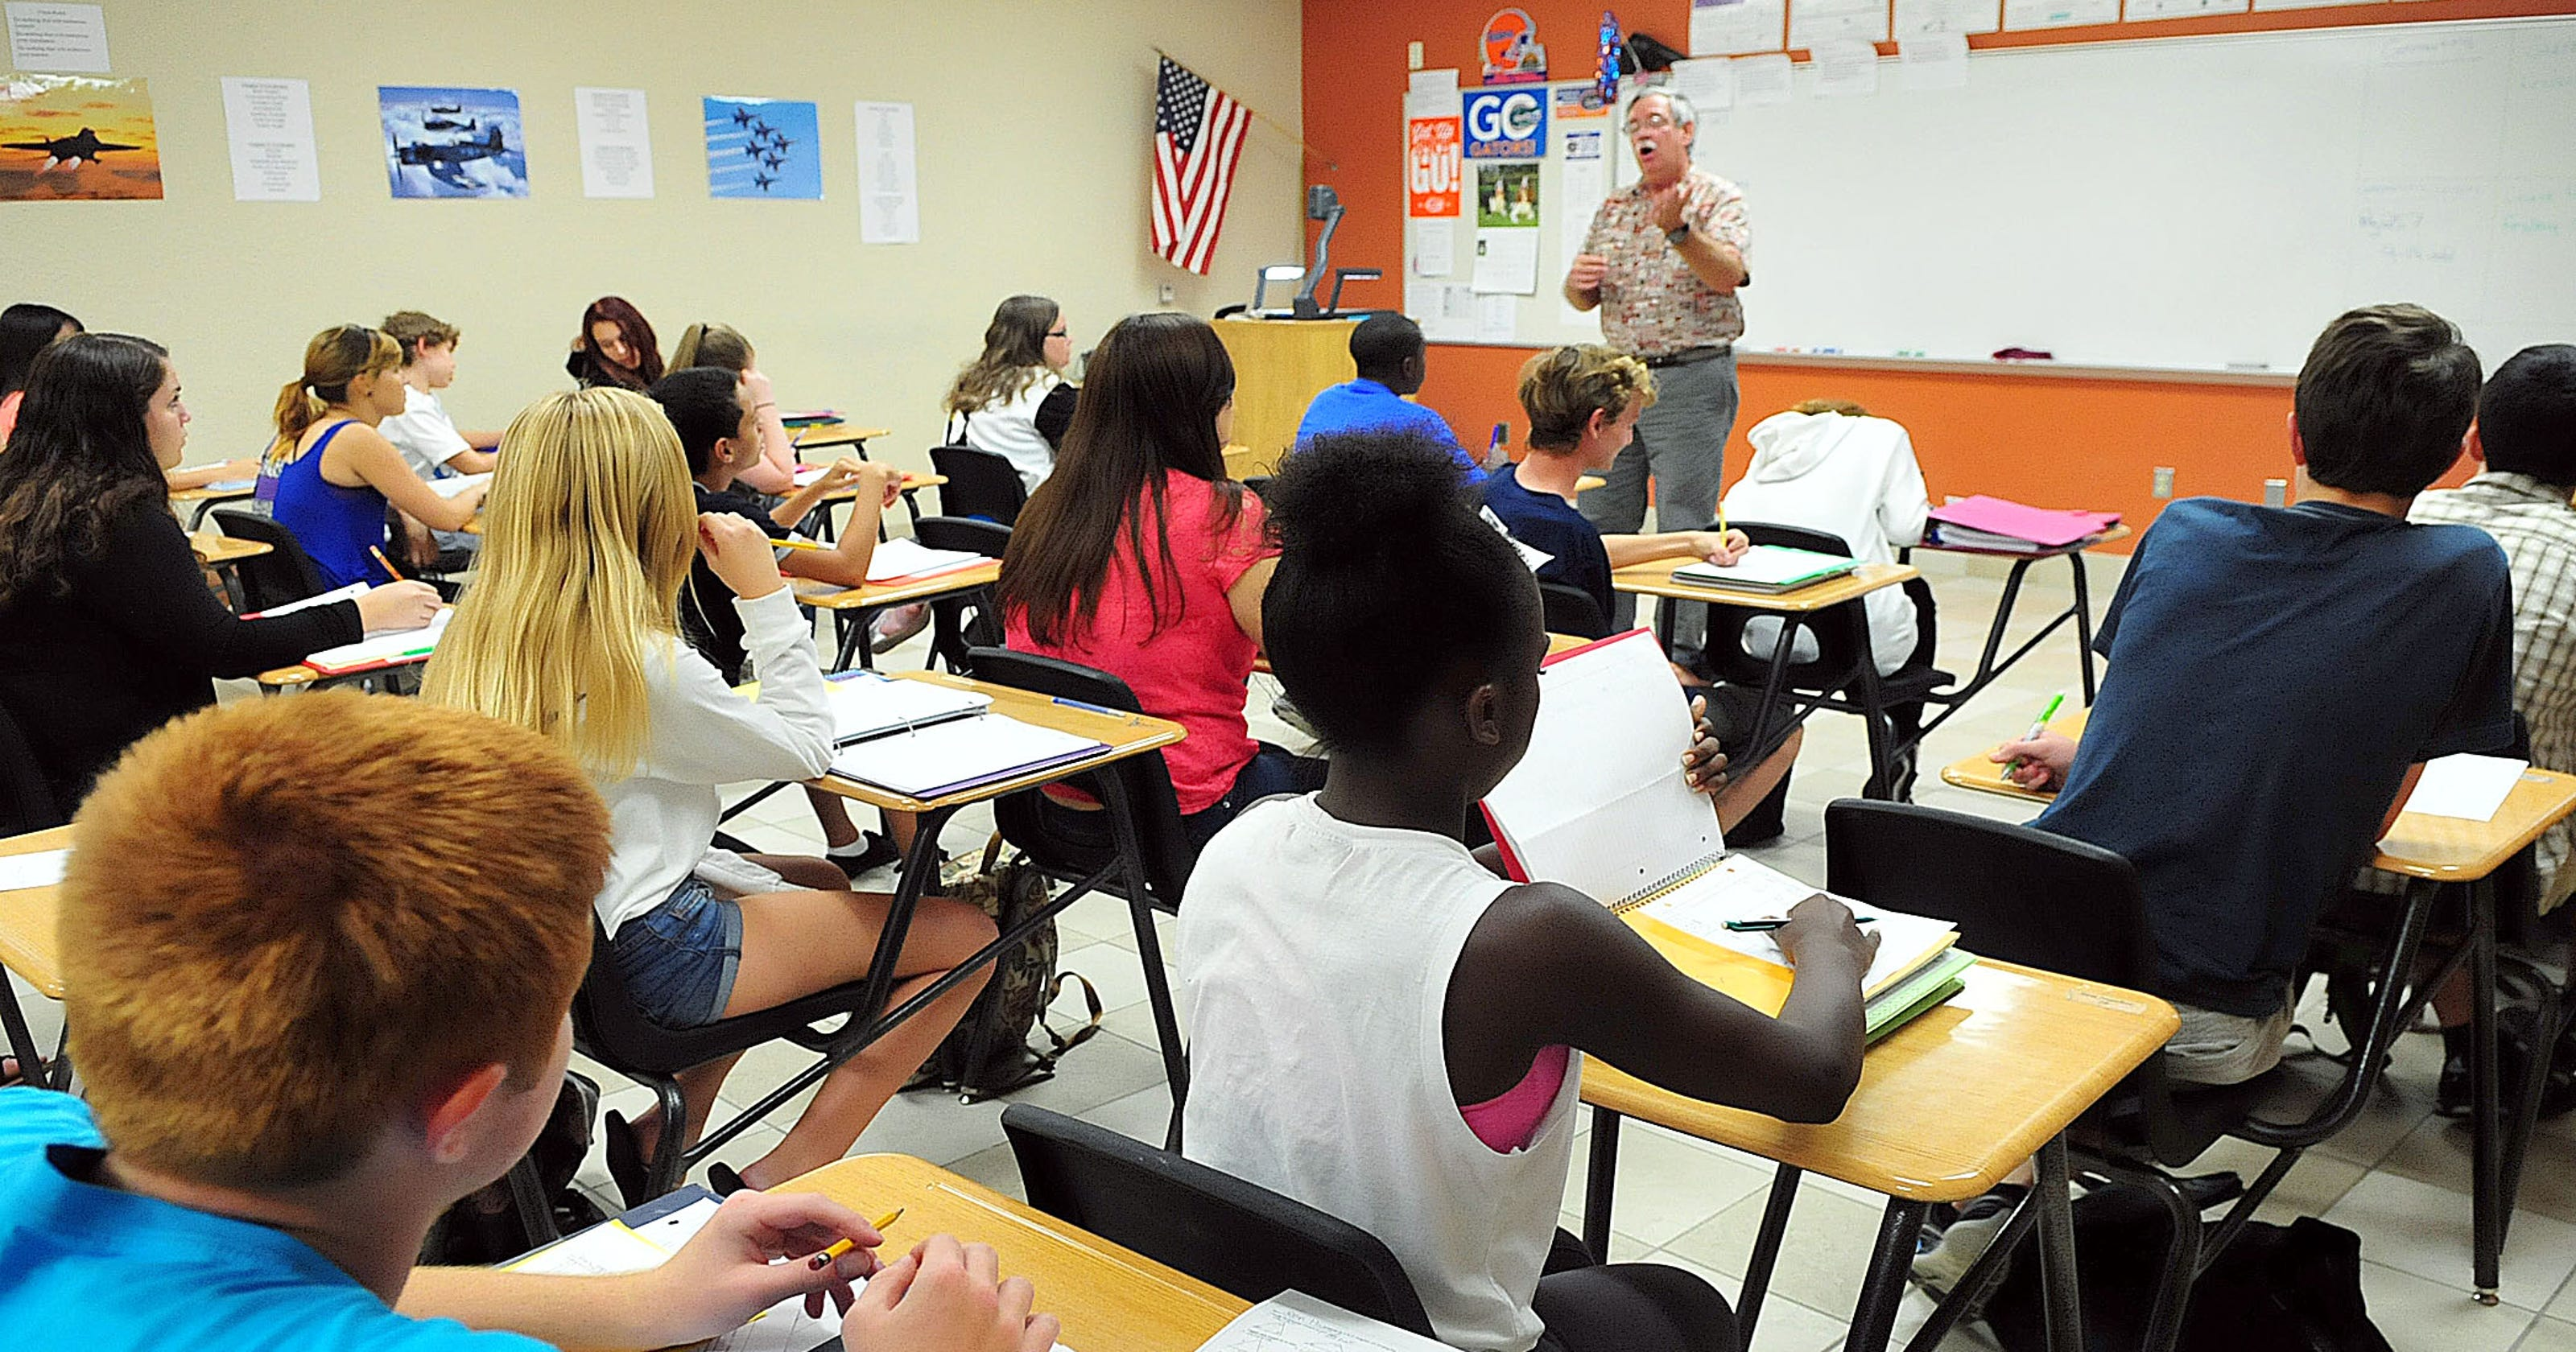 Fla  school breaks class-size law on purpose